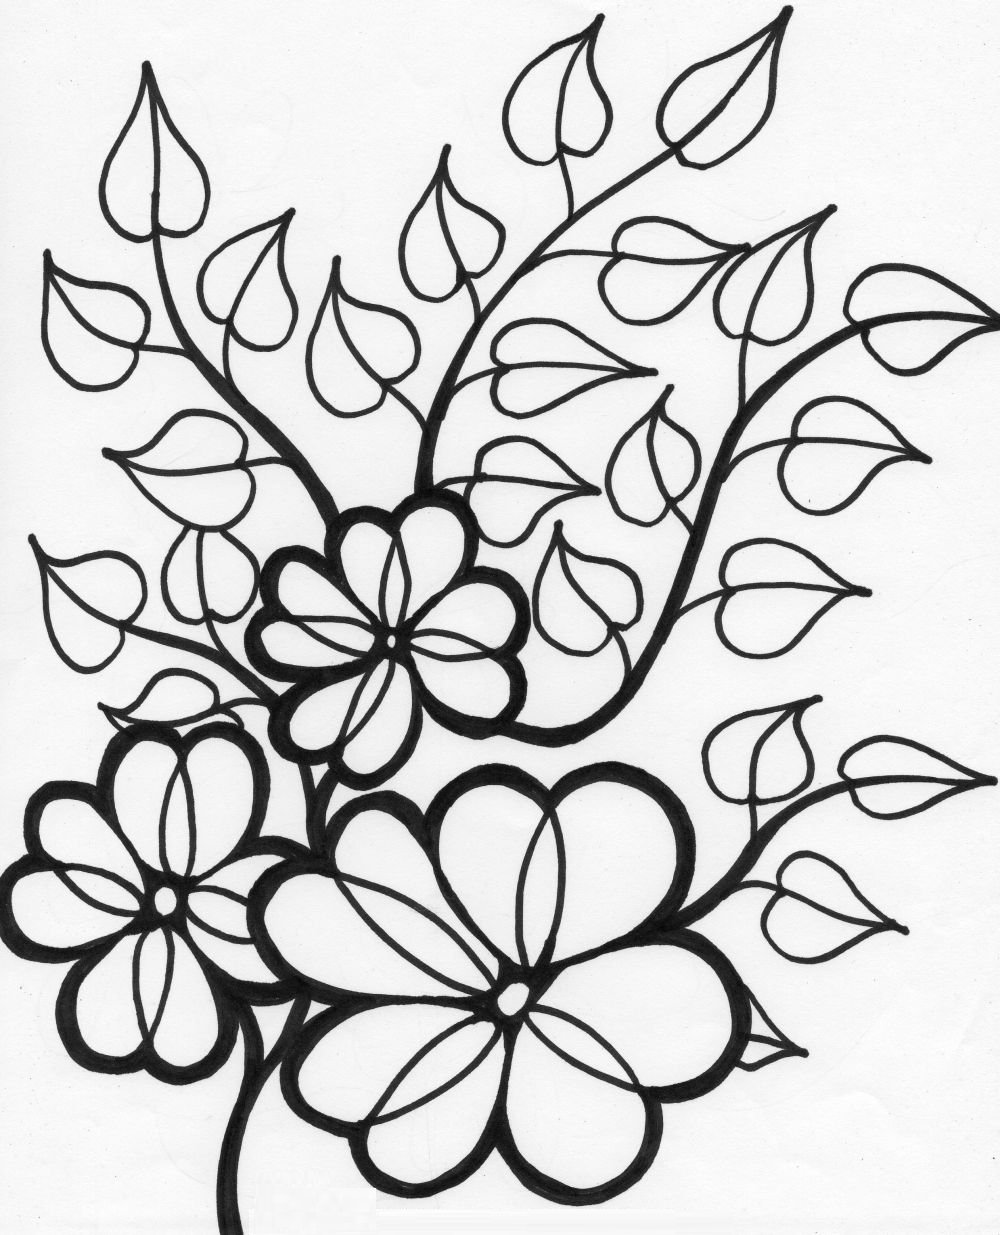 flowers coloring pages printable spring flower coloring pages to download and print for free coloring pages flowers printable